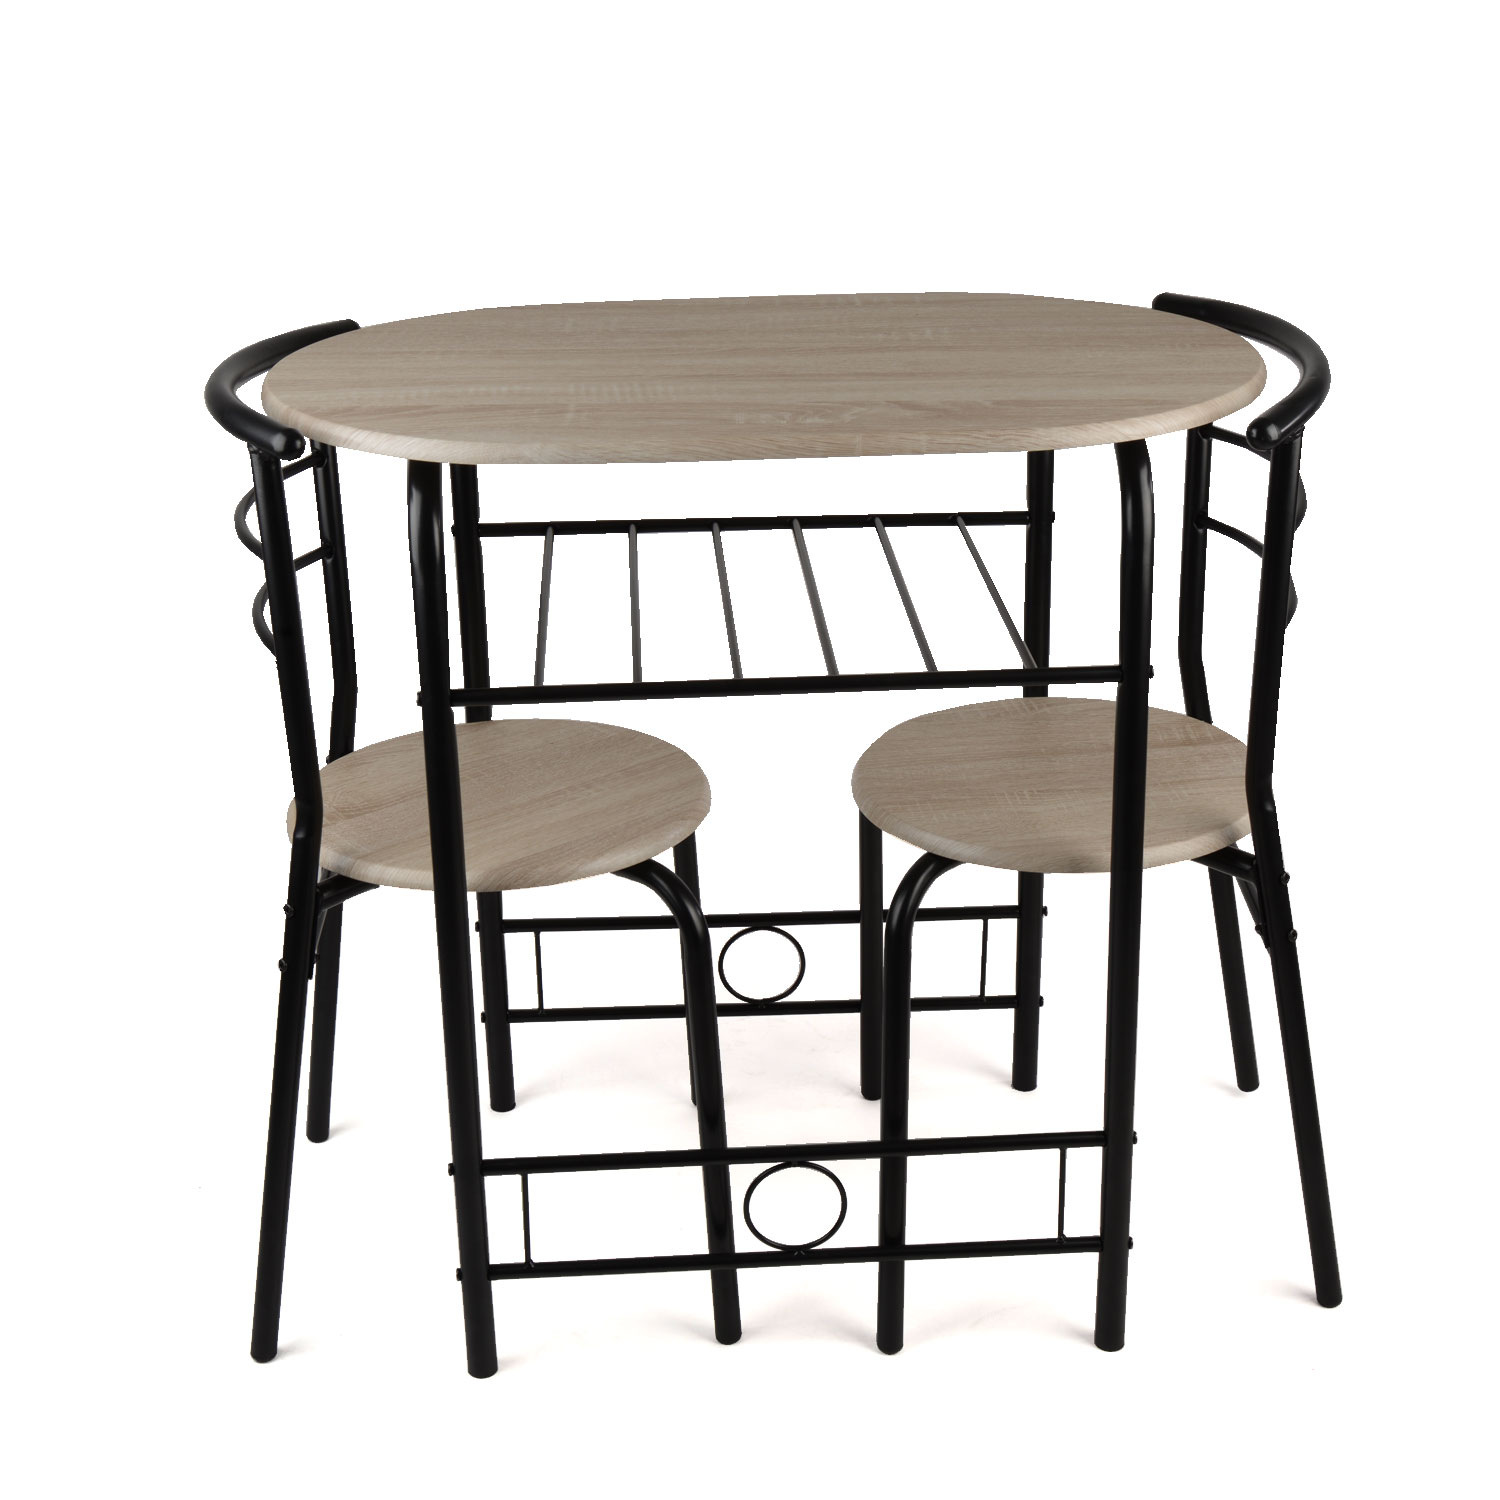 3 piece dining set breakfast bar kitchen table chairs for Breakfast dining set